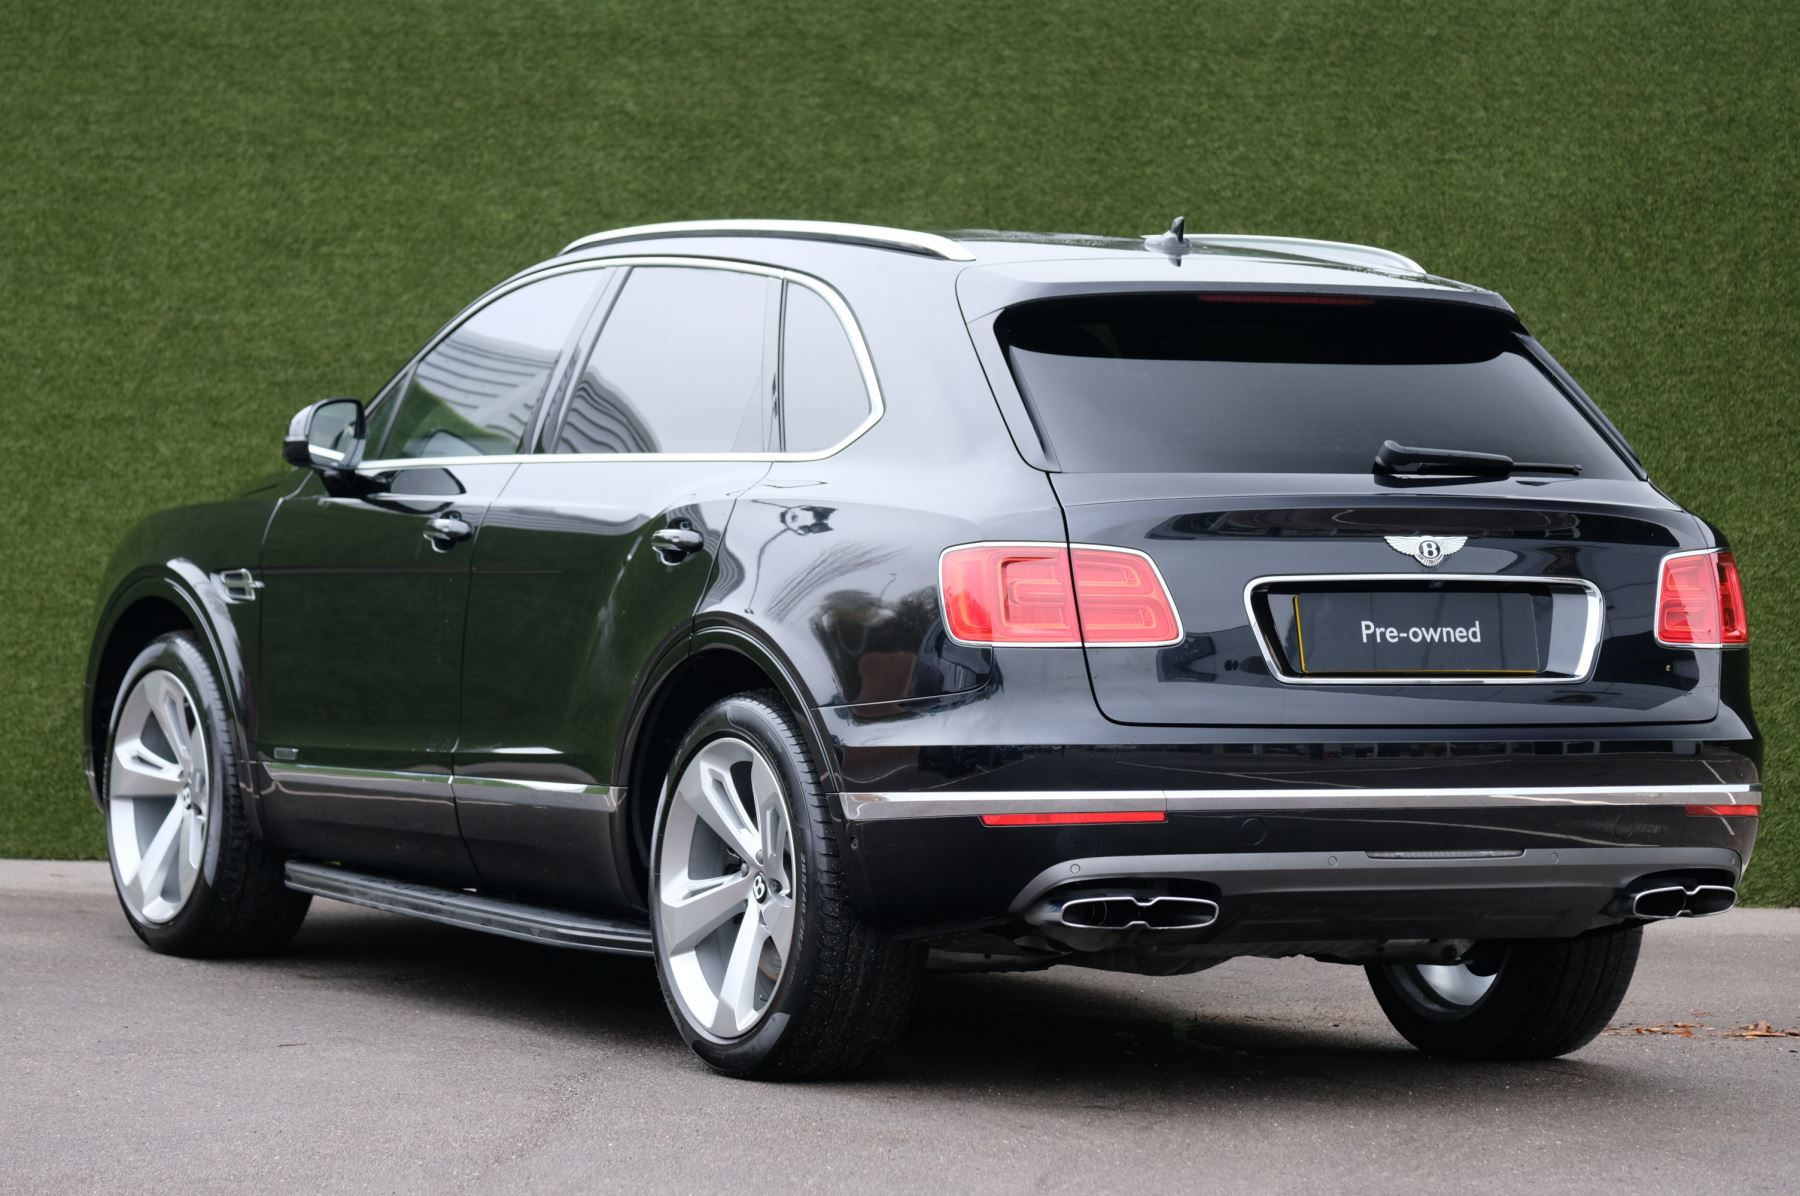 Bentley Bentayga Diesel 4.0 V8 Mulliner Driving Spec 5dr Auto - 7 Seat Specification image 5